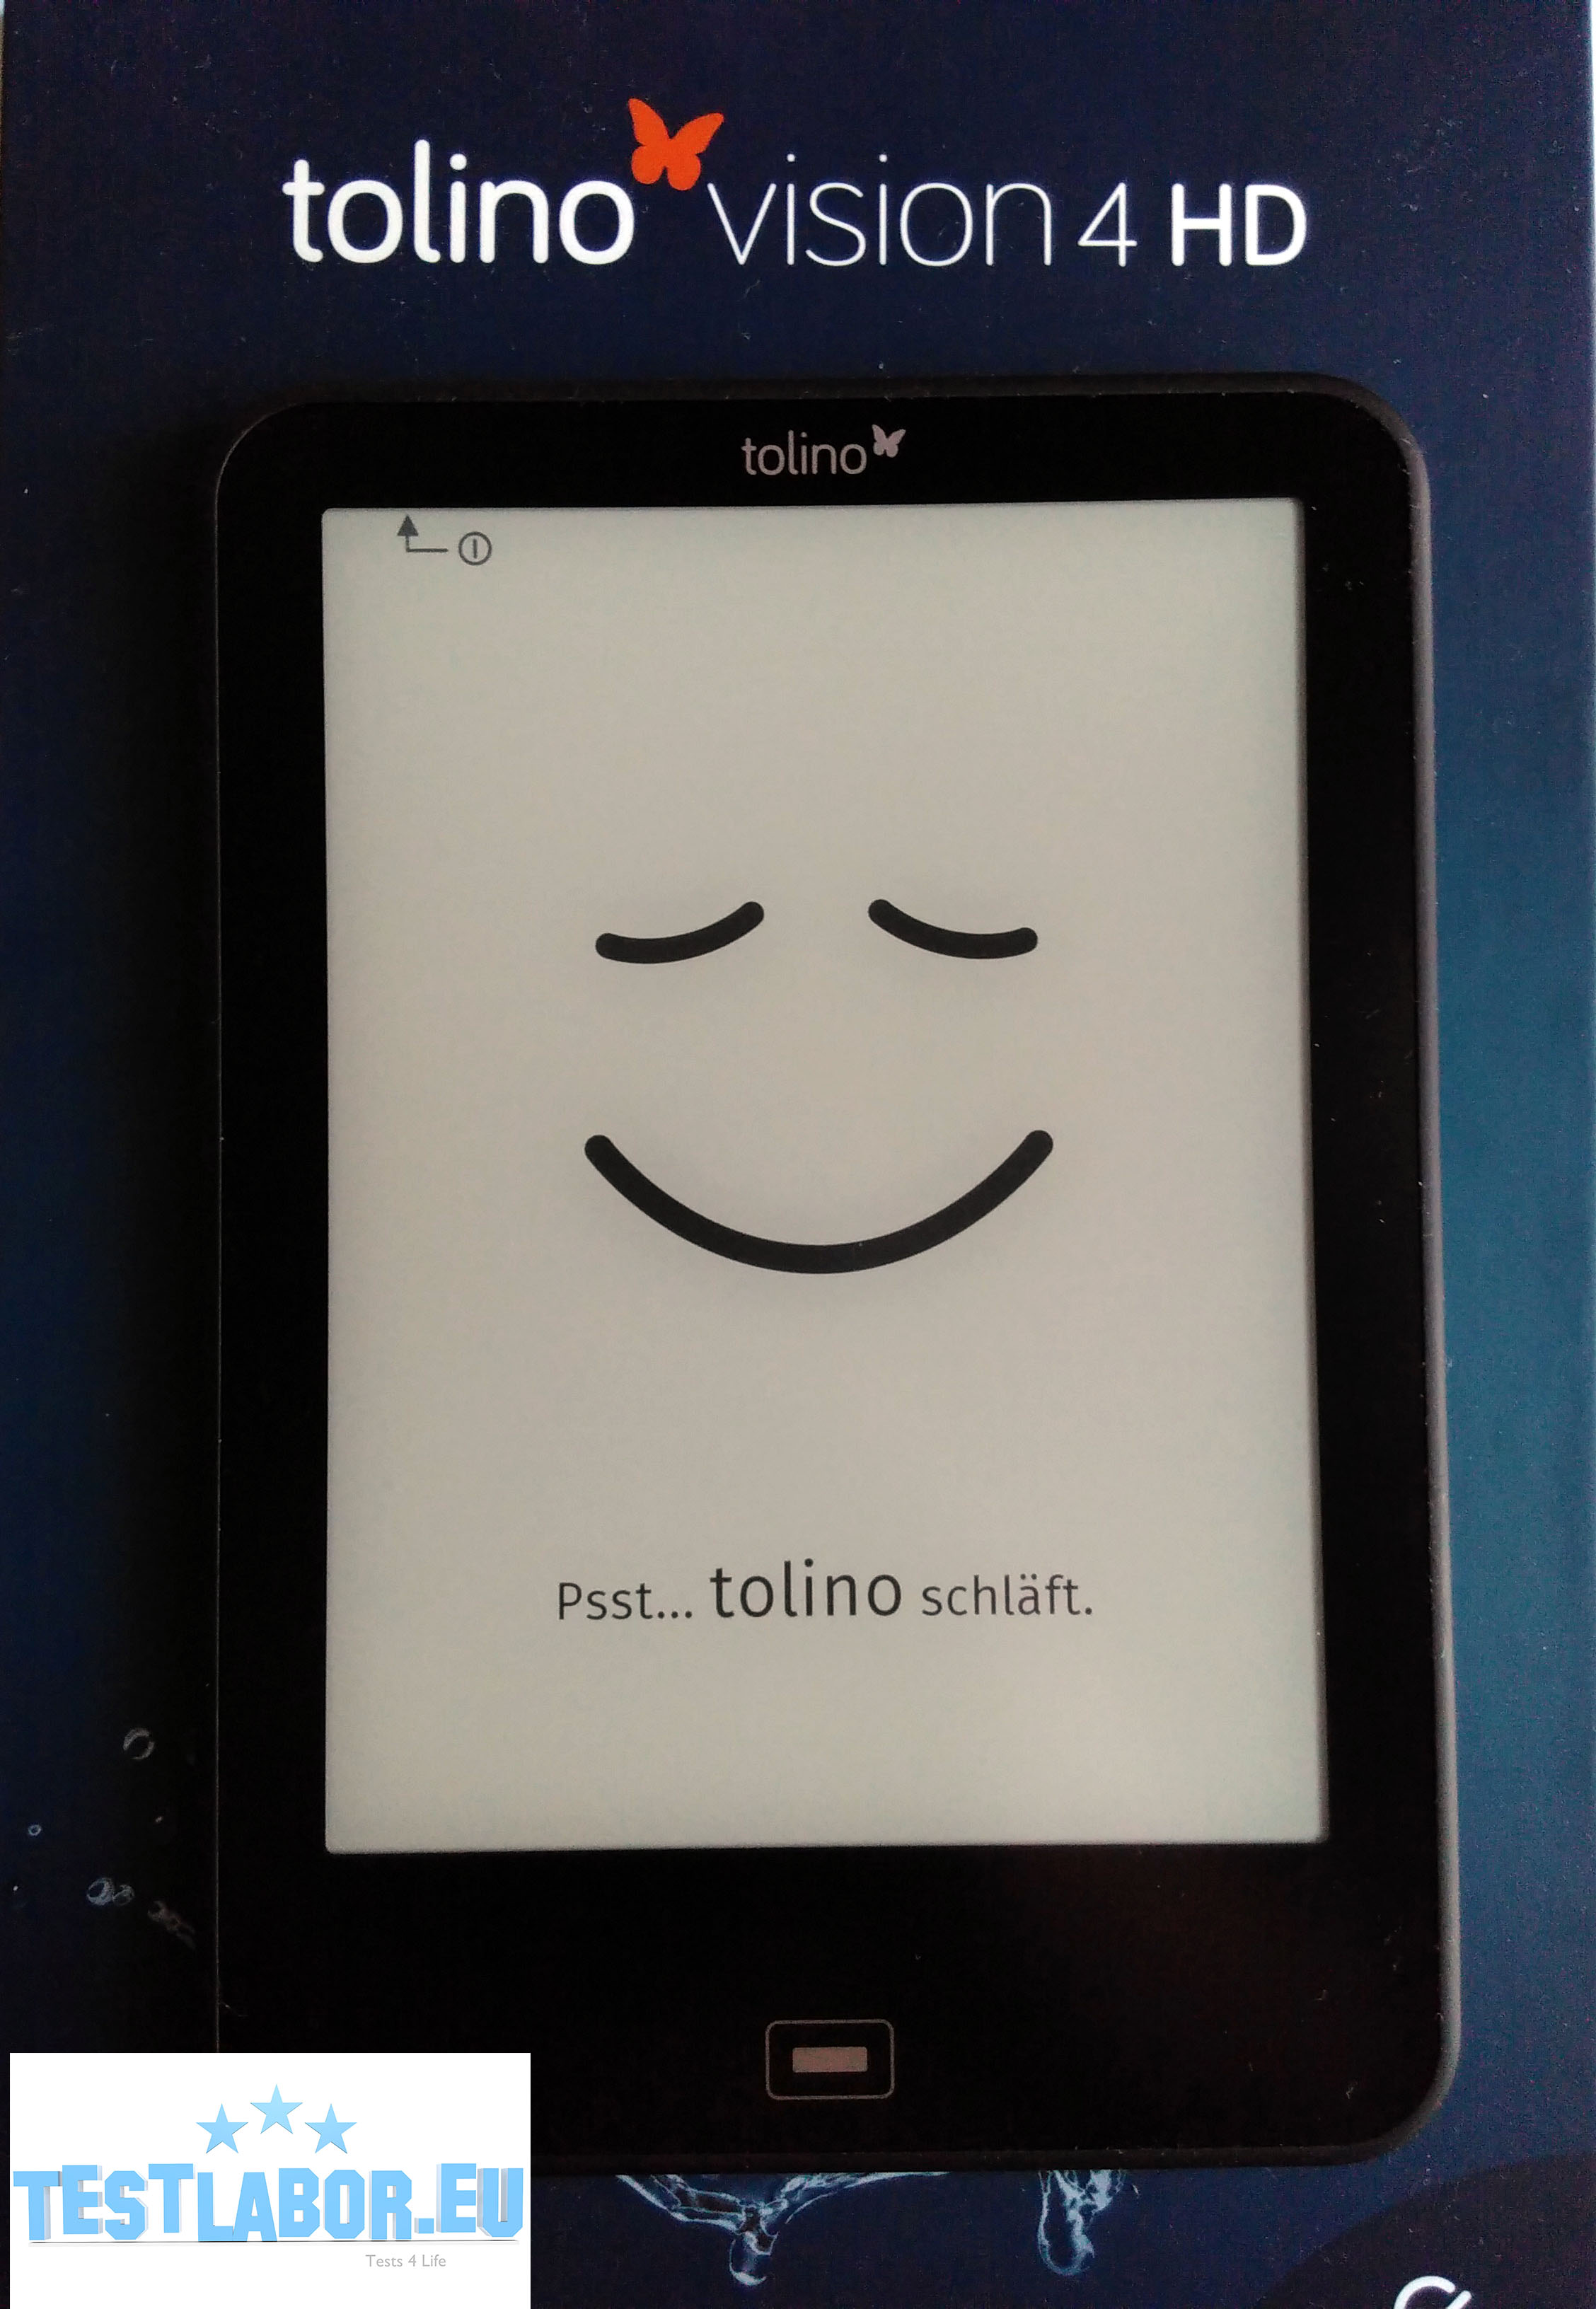 tolino vision 4 HD with Water Protection, ppi Carta E Ink display, illumination with smartlight, tap2flip, 8GB of memory, touch screen and several weeks battery life..